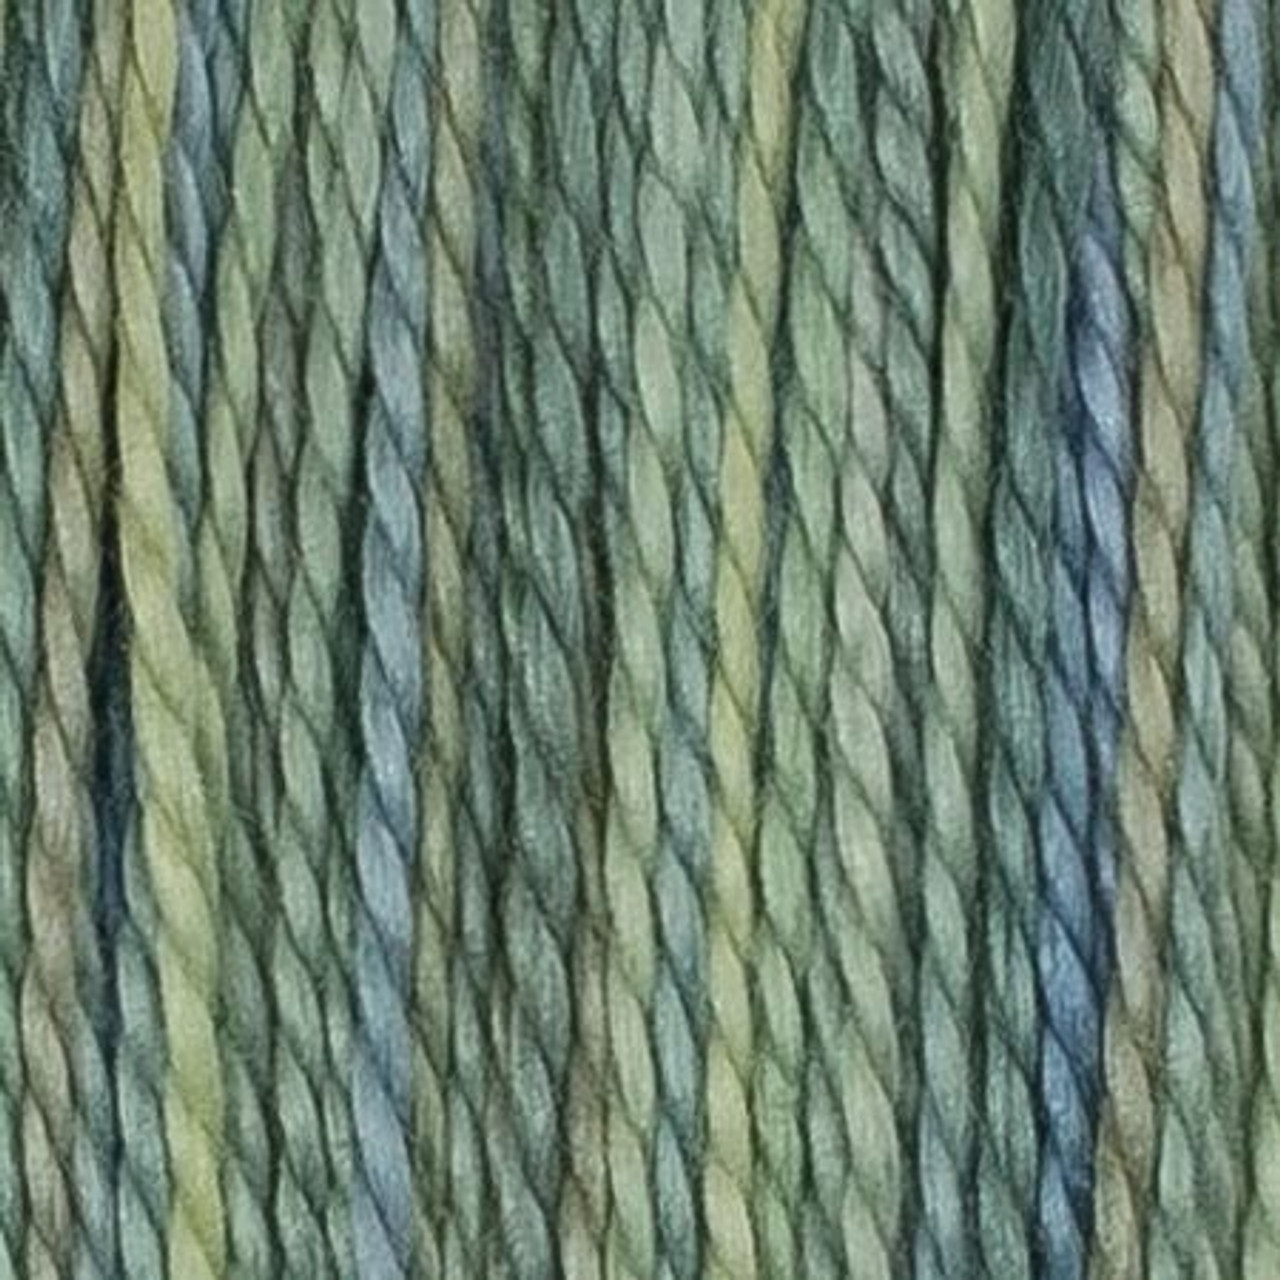 House of Embroidery : Cape Town Coastal Drive Collection, 8wt Perle Cotton - Grapes (39B)